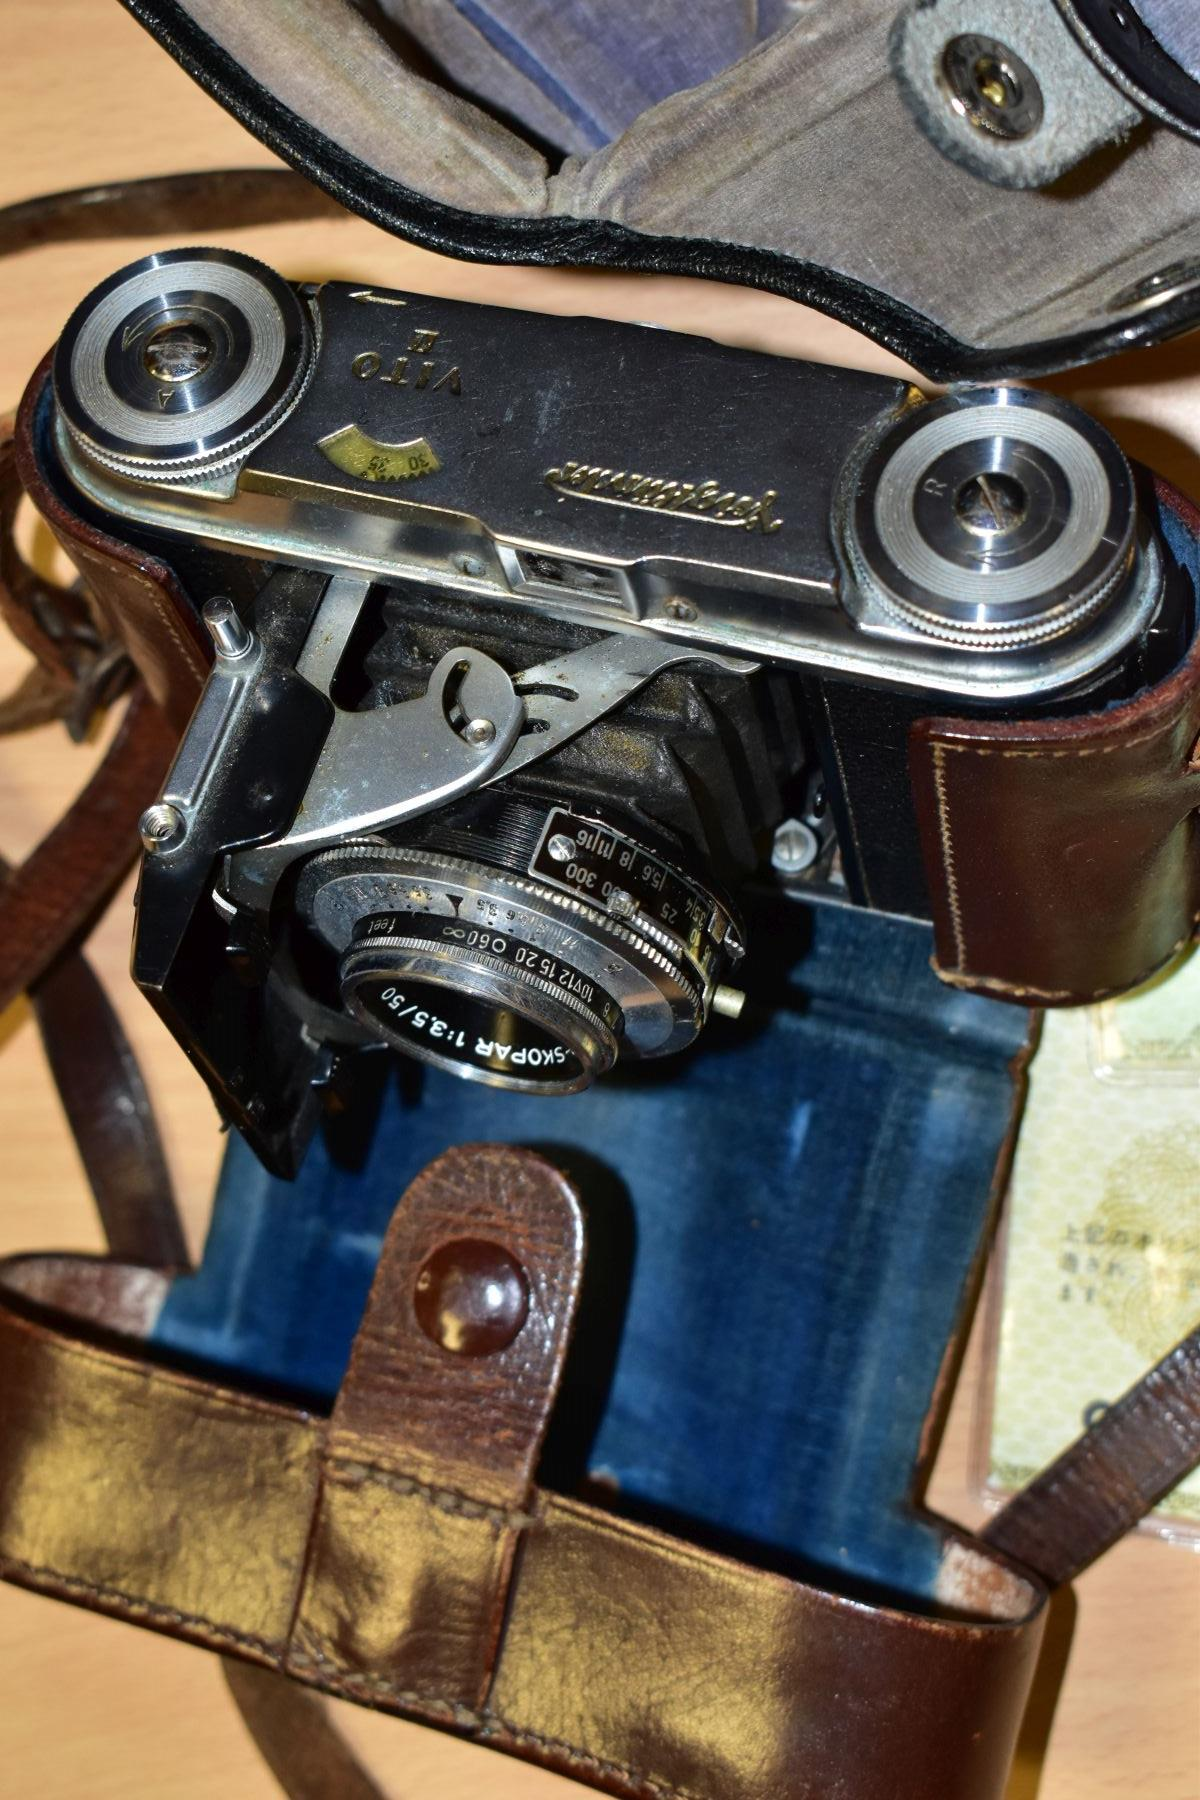 AN ORIGINAL OLYMPUS F HALF FRAME FILM CAMERA fitted with a 38mm f1.8 Olympus Zuiko lens and F T - Image 3 of 11